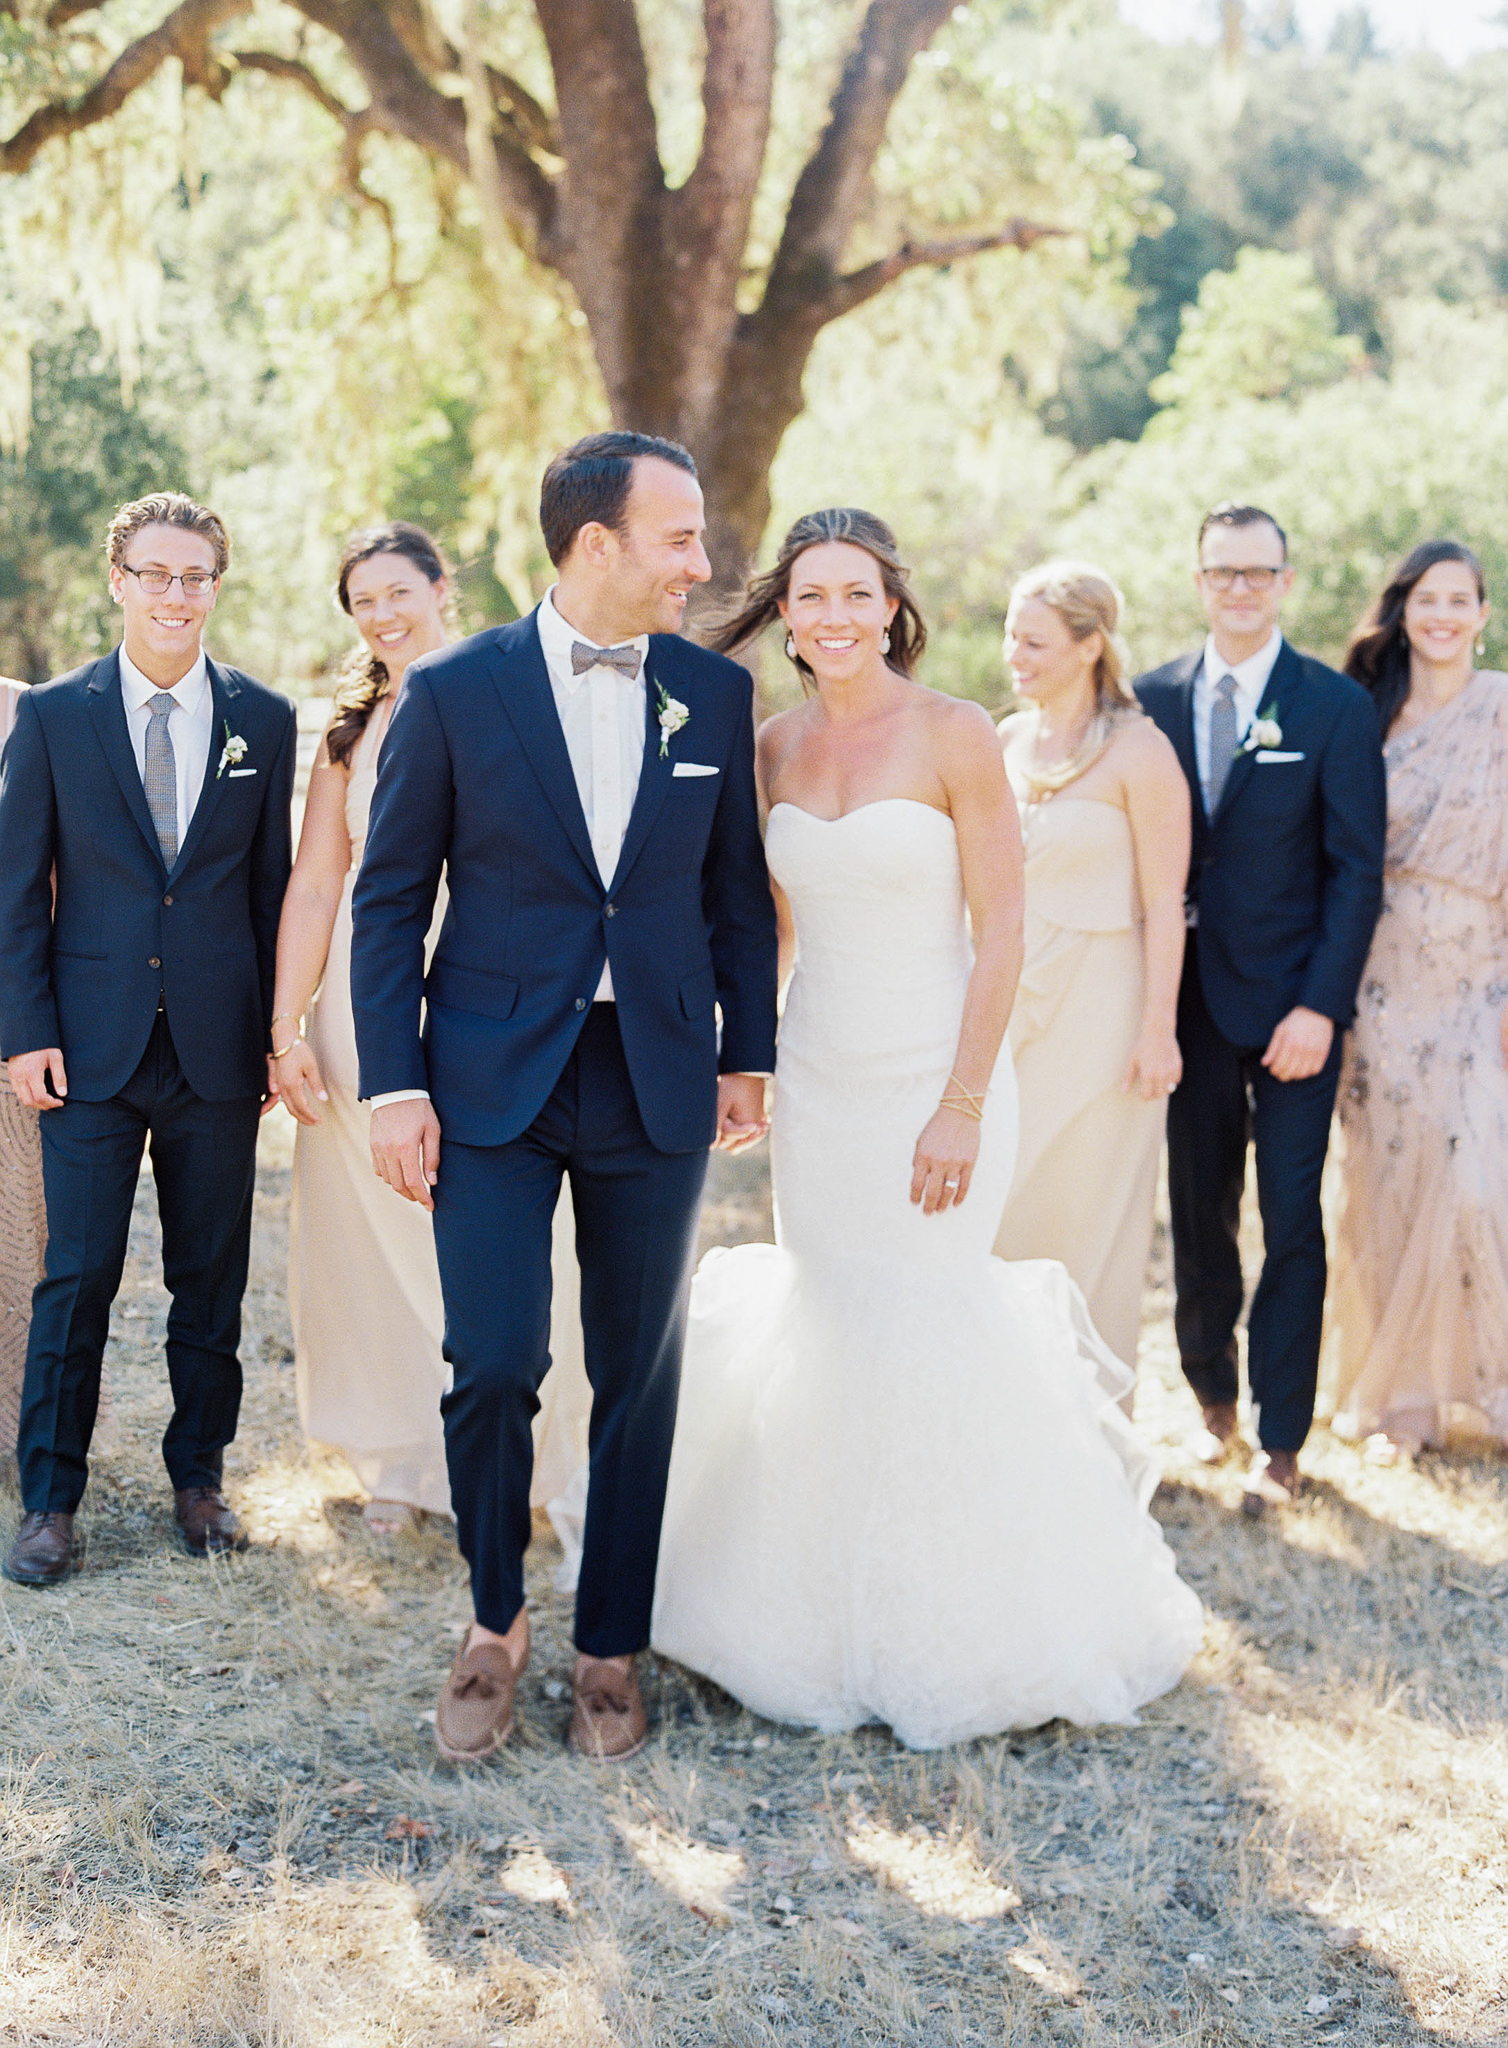 Meghan Mehan Photography - Fine Art Film Wedding Photography - San Francisco | Napa | Sonoma | Big Sur | Chicago | Minneapolis | Milwaukee | Lake Geneva | Door County | Wisconsin 045.jpg